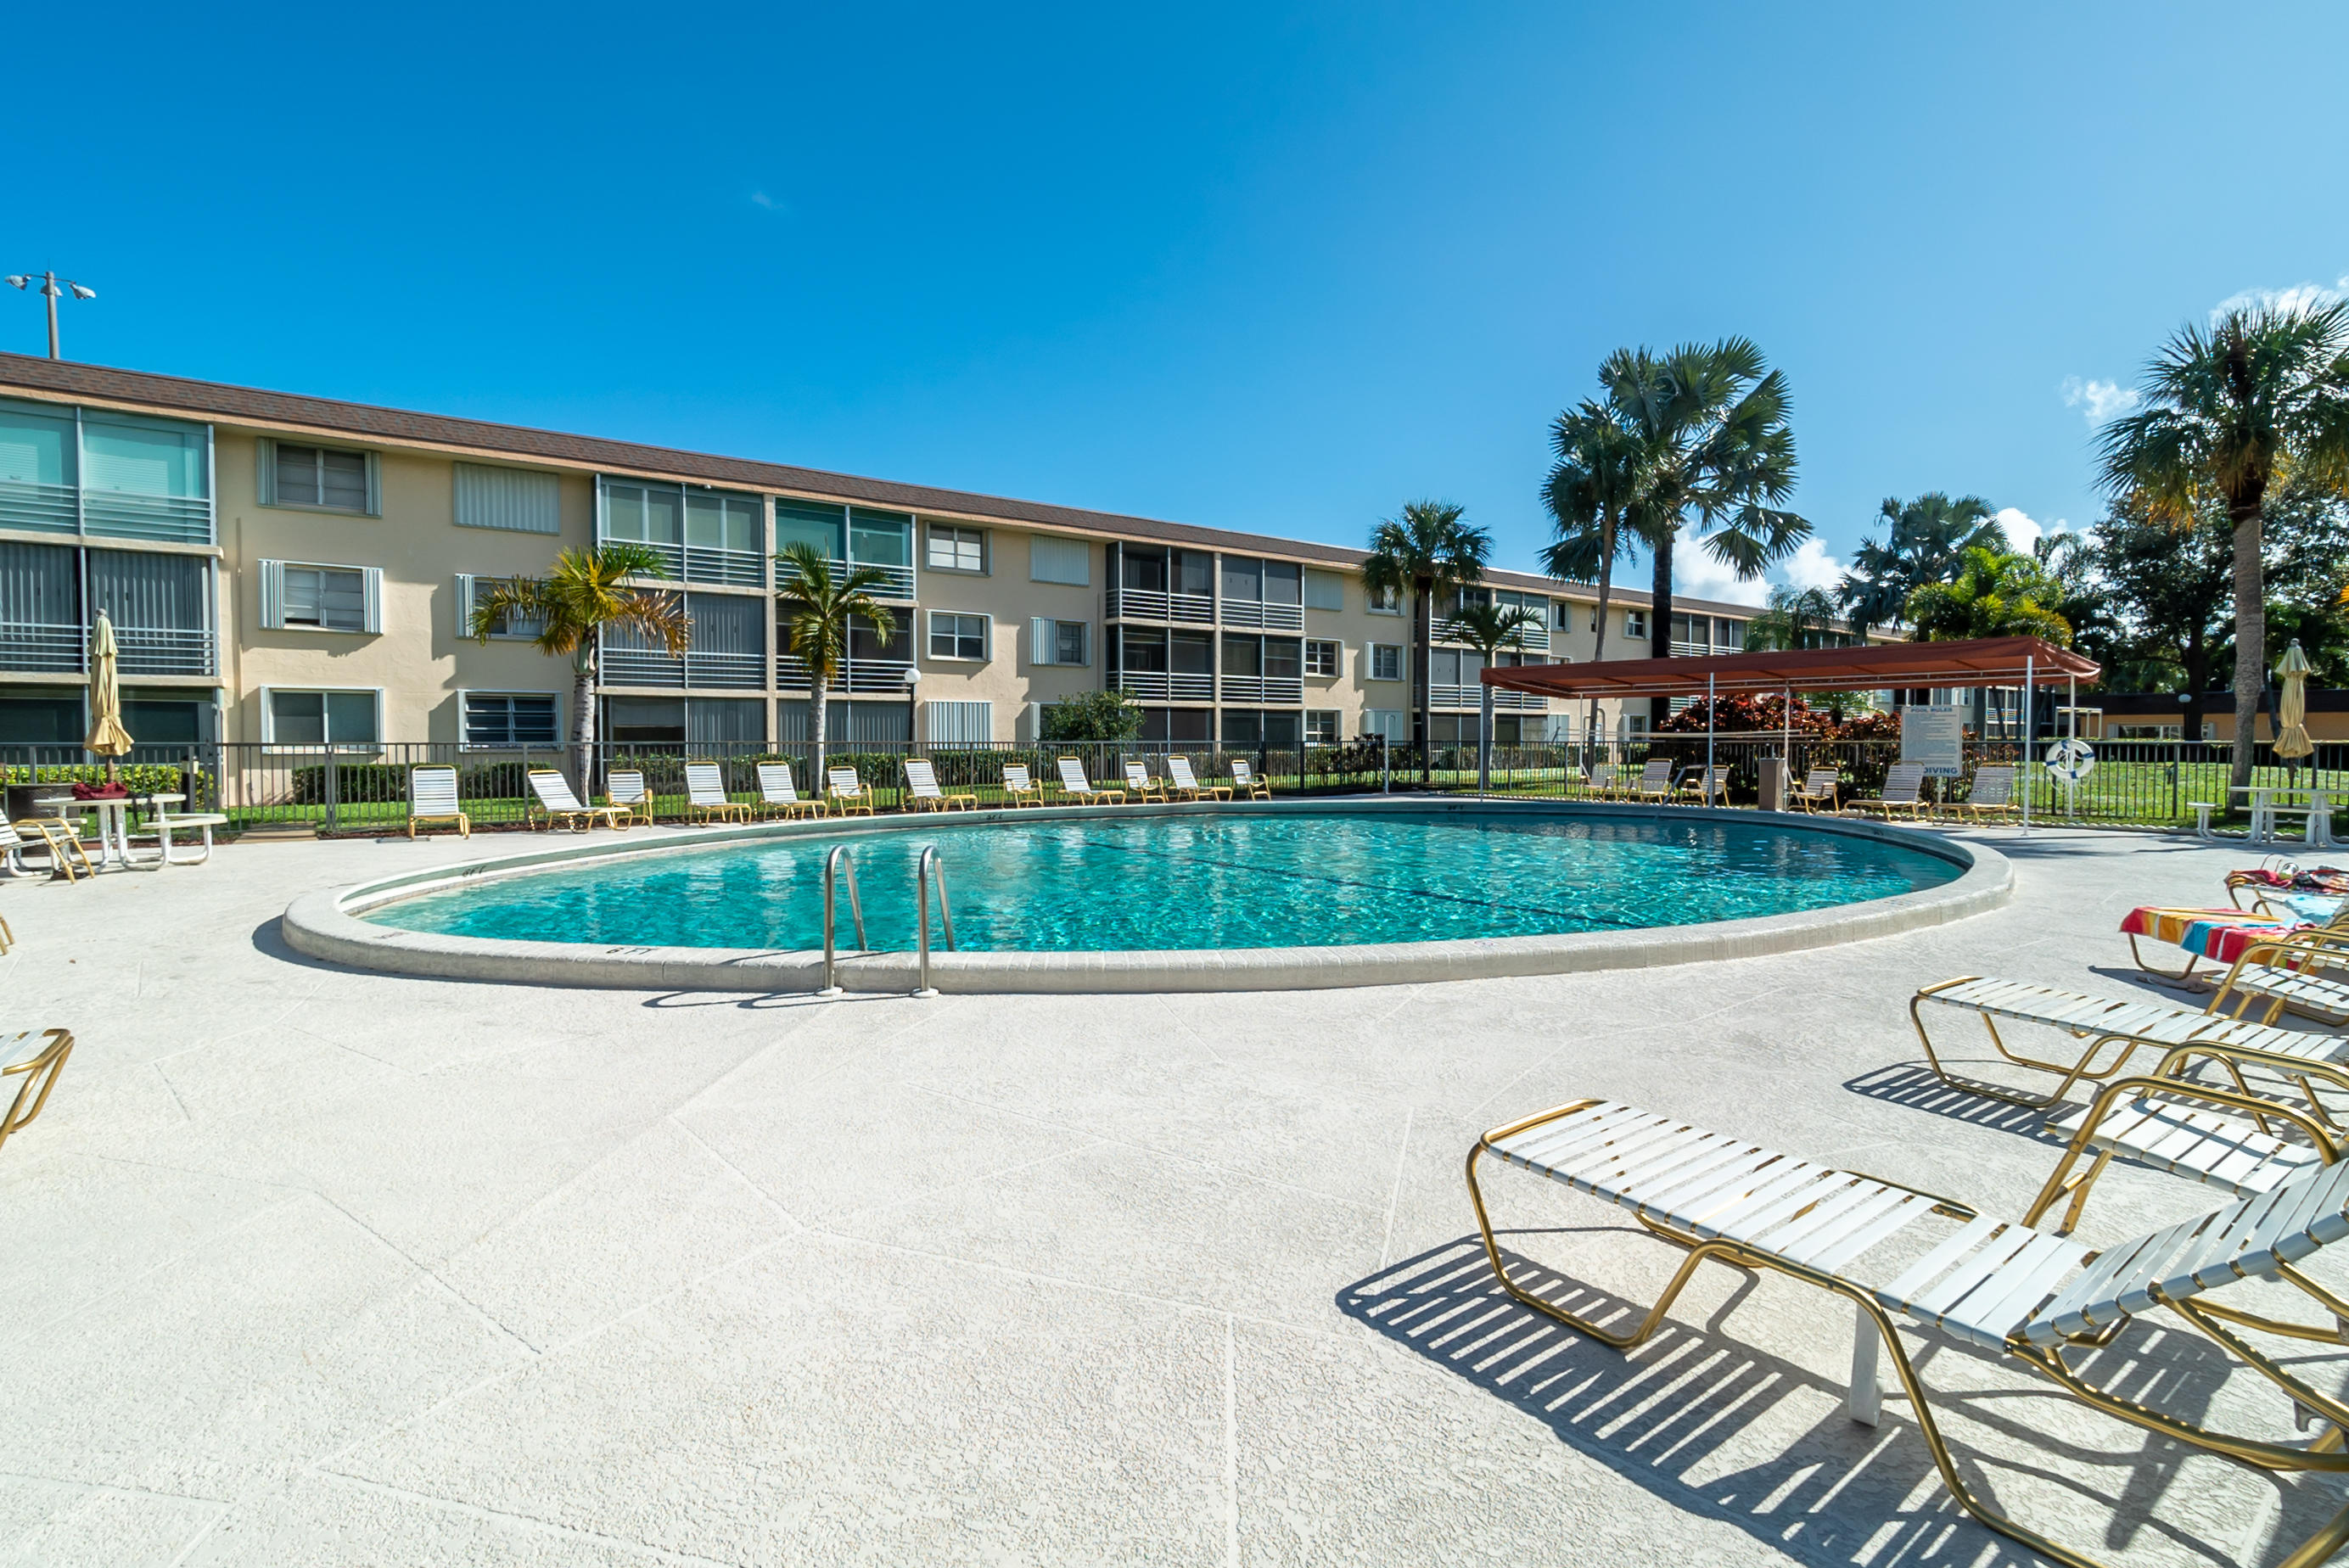 4500 N Federal Highway #338E Lighthouse Point, FL 33064